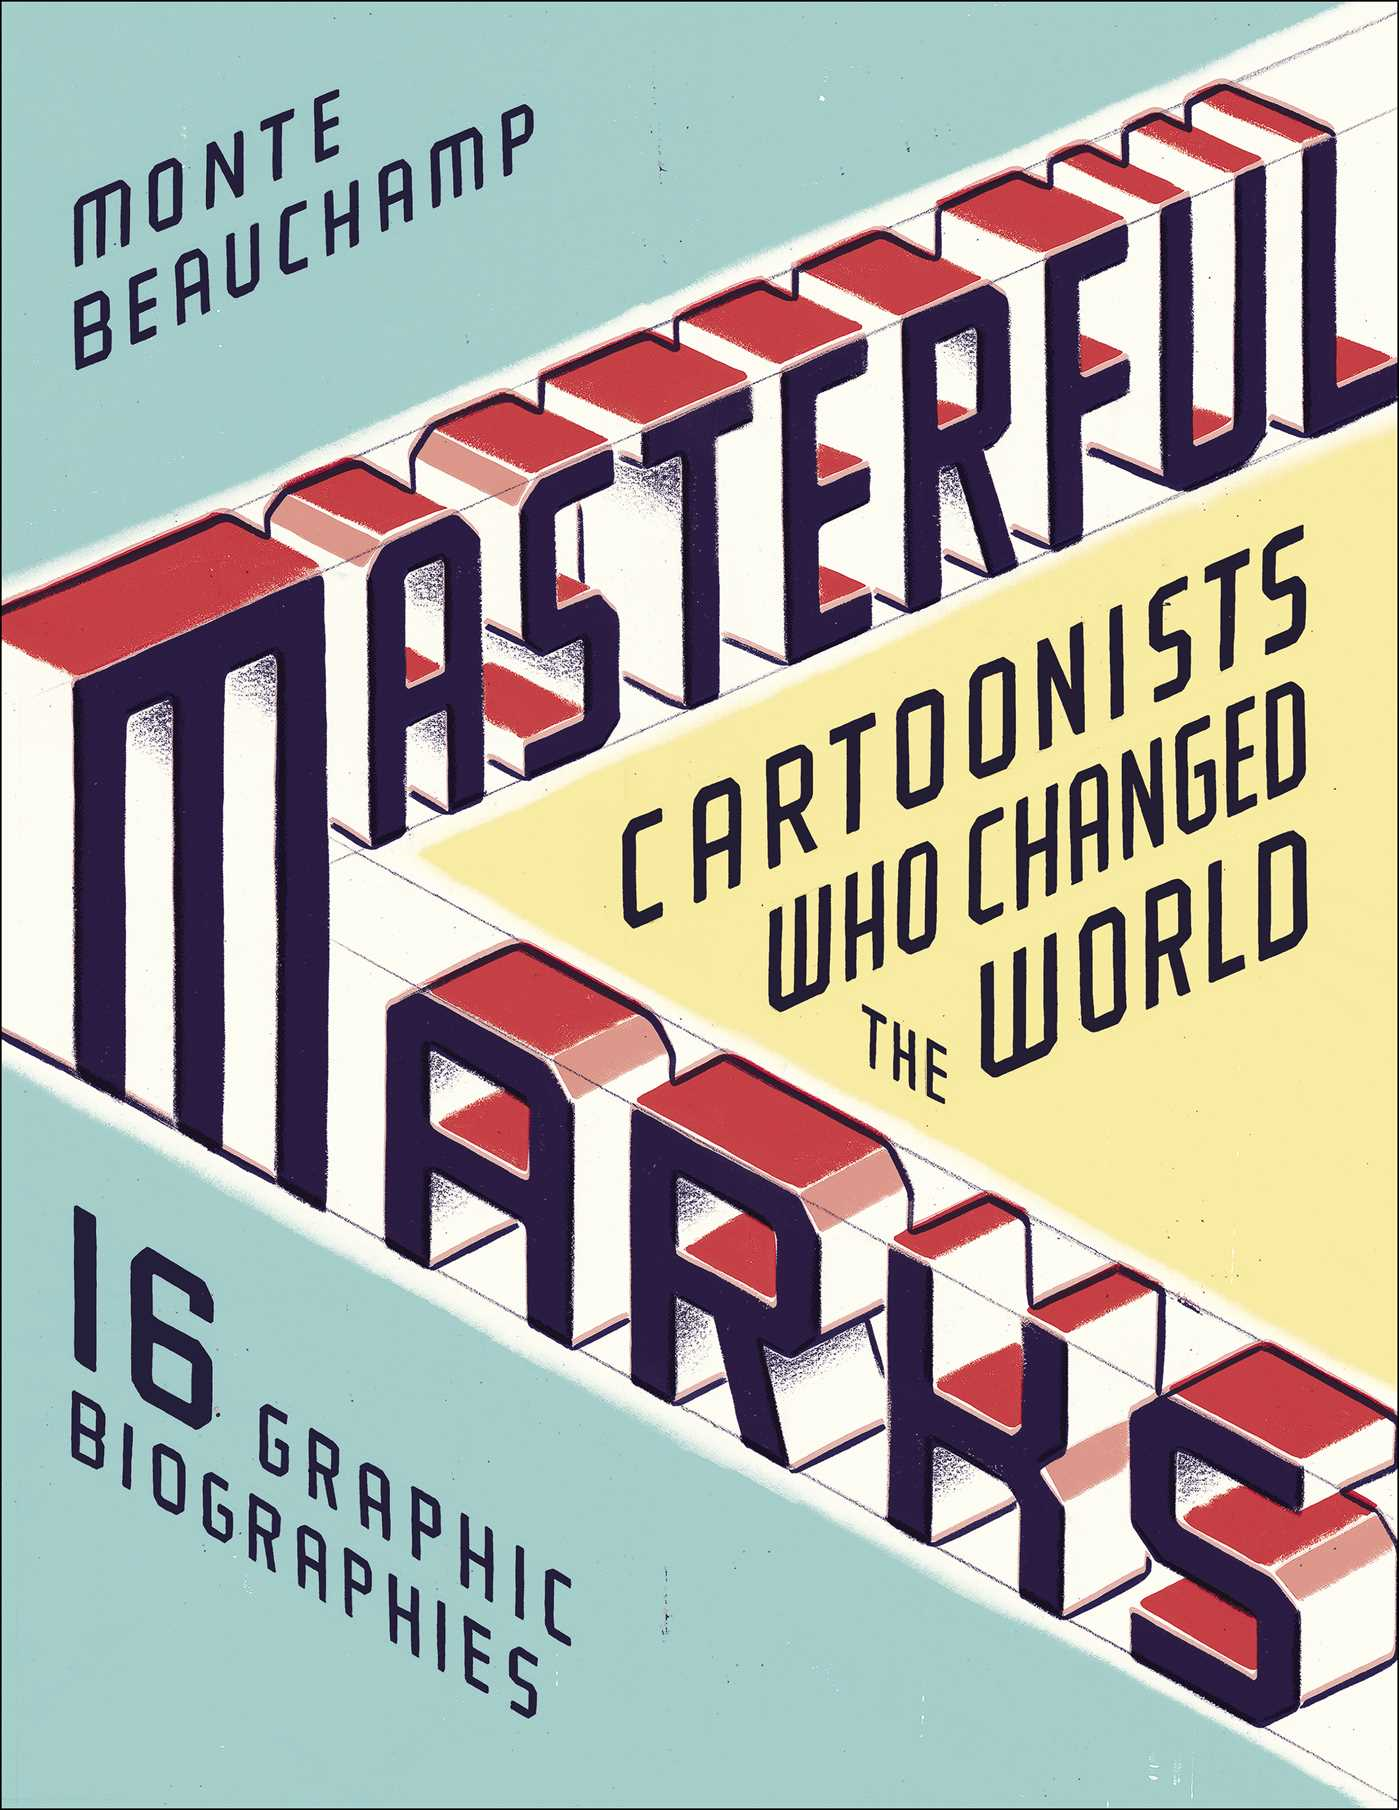 Masterful Marks Cartoonists Who Changed the World